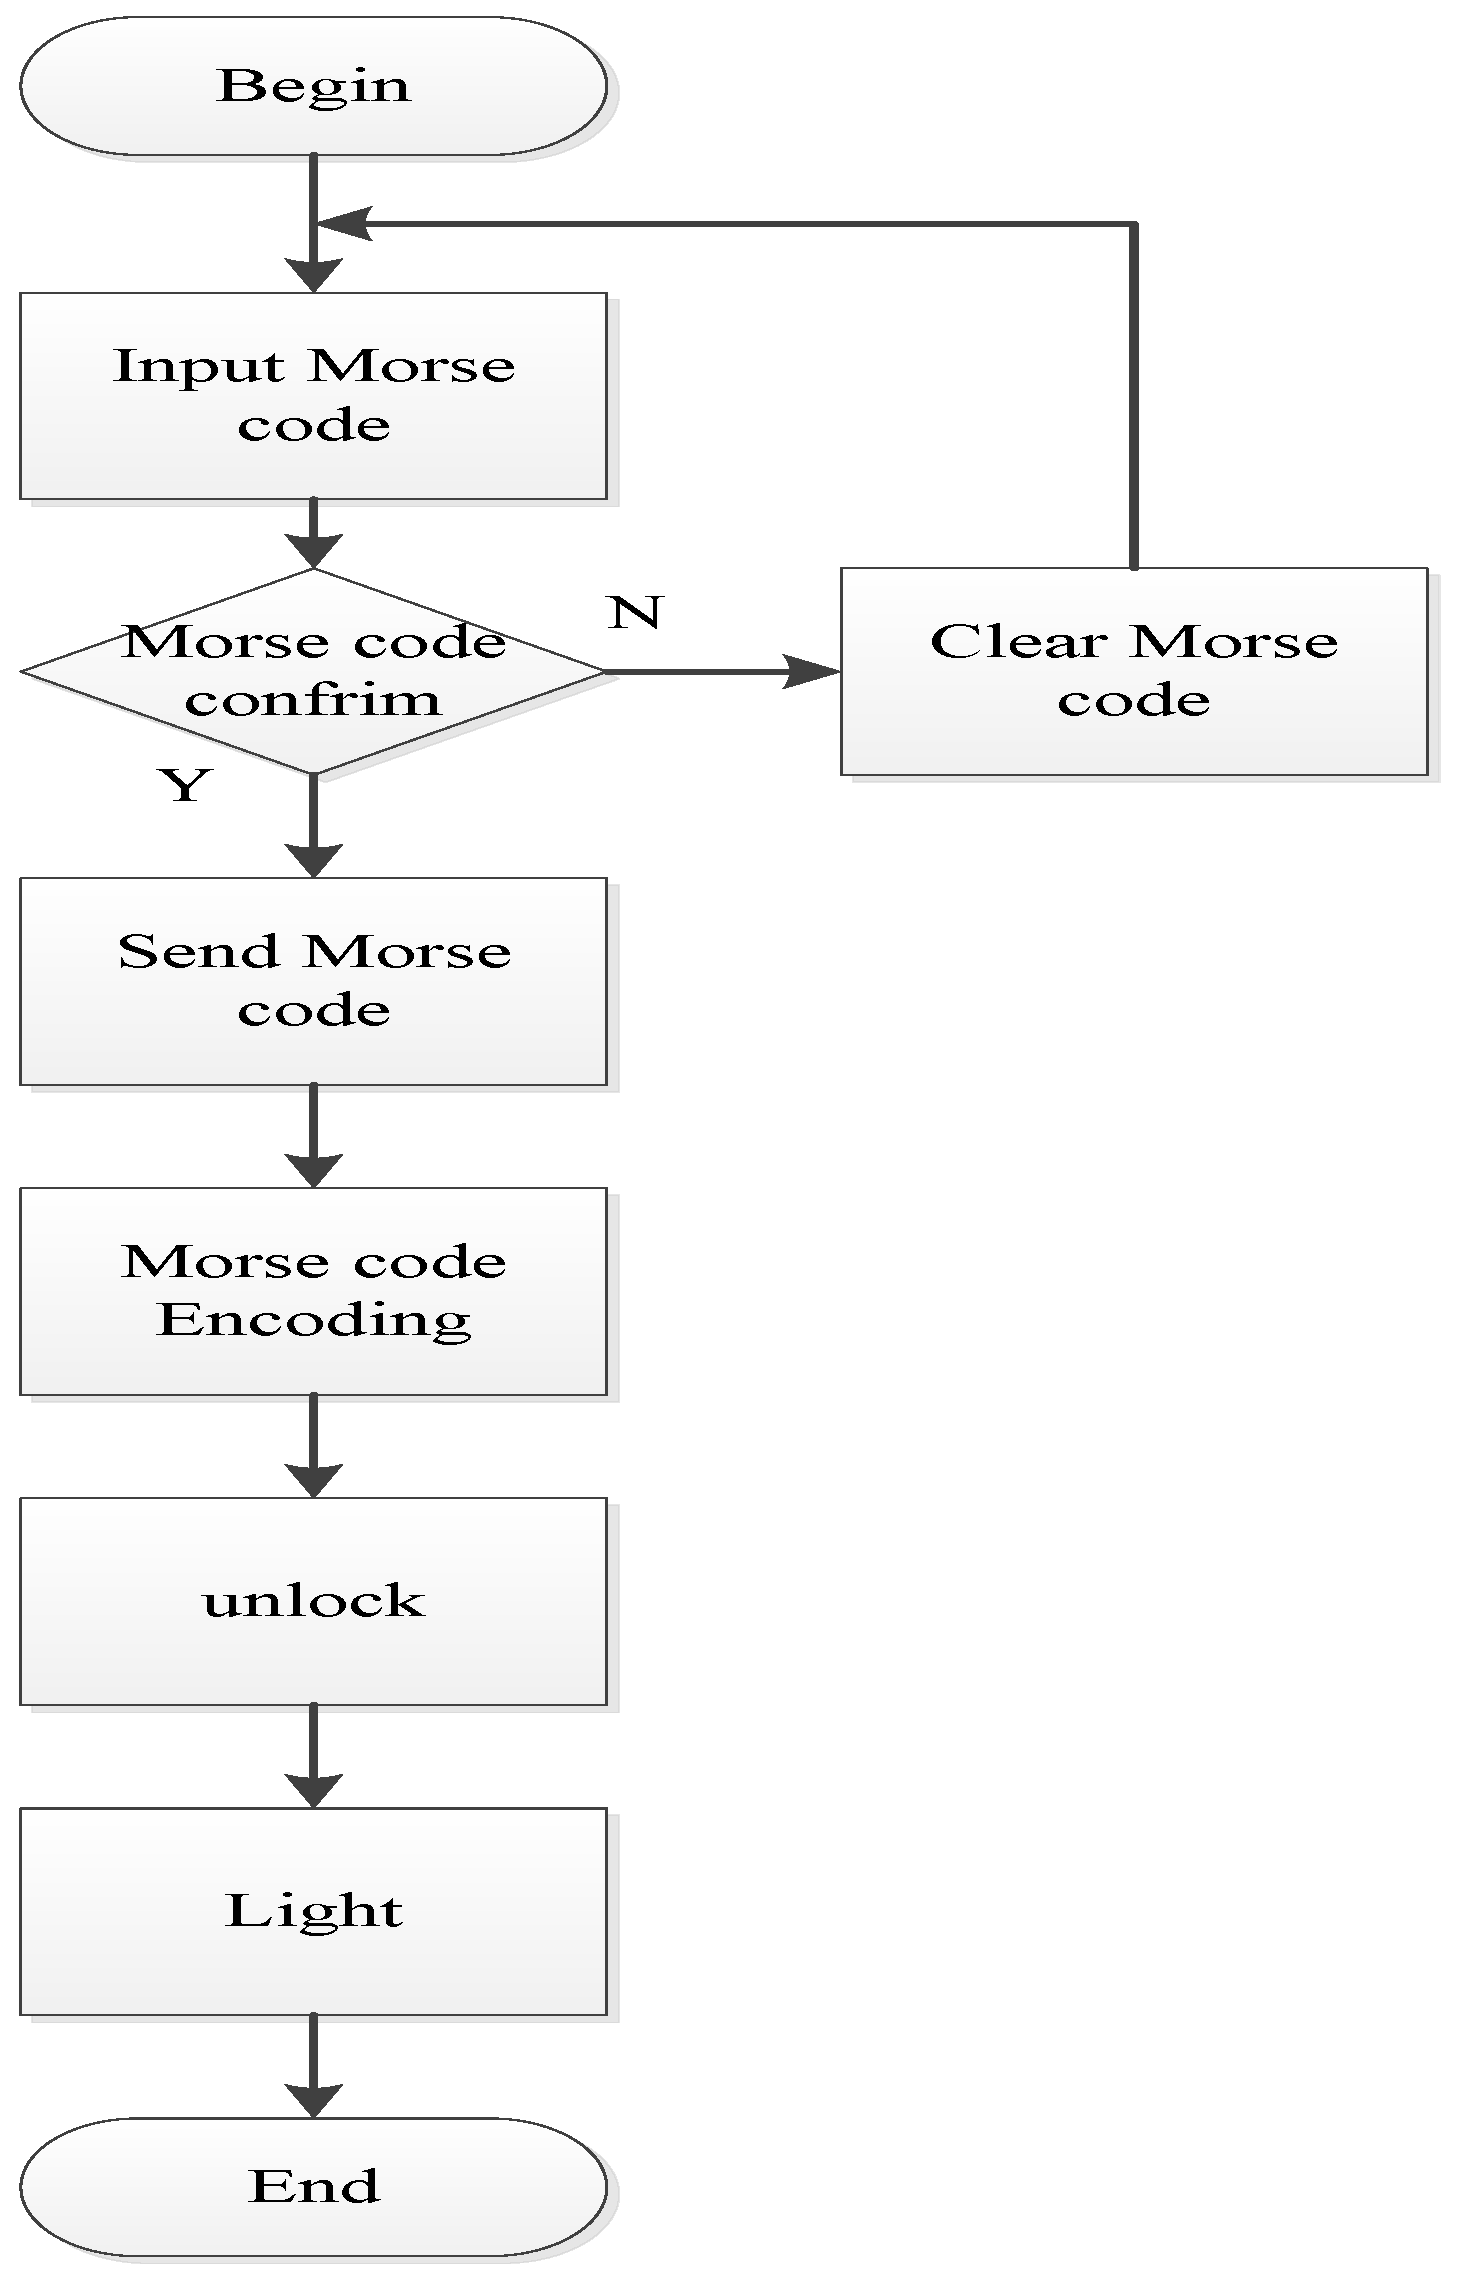 Applied Sciences Free Full Text A Novel Optical Morse Code Based Electronic Lock Using The Ambient Light Sensor And Fuzzy Controller Html